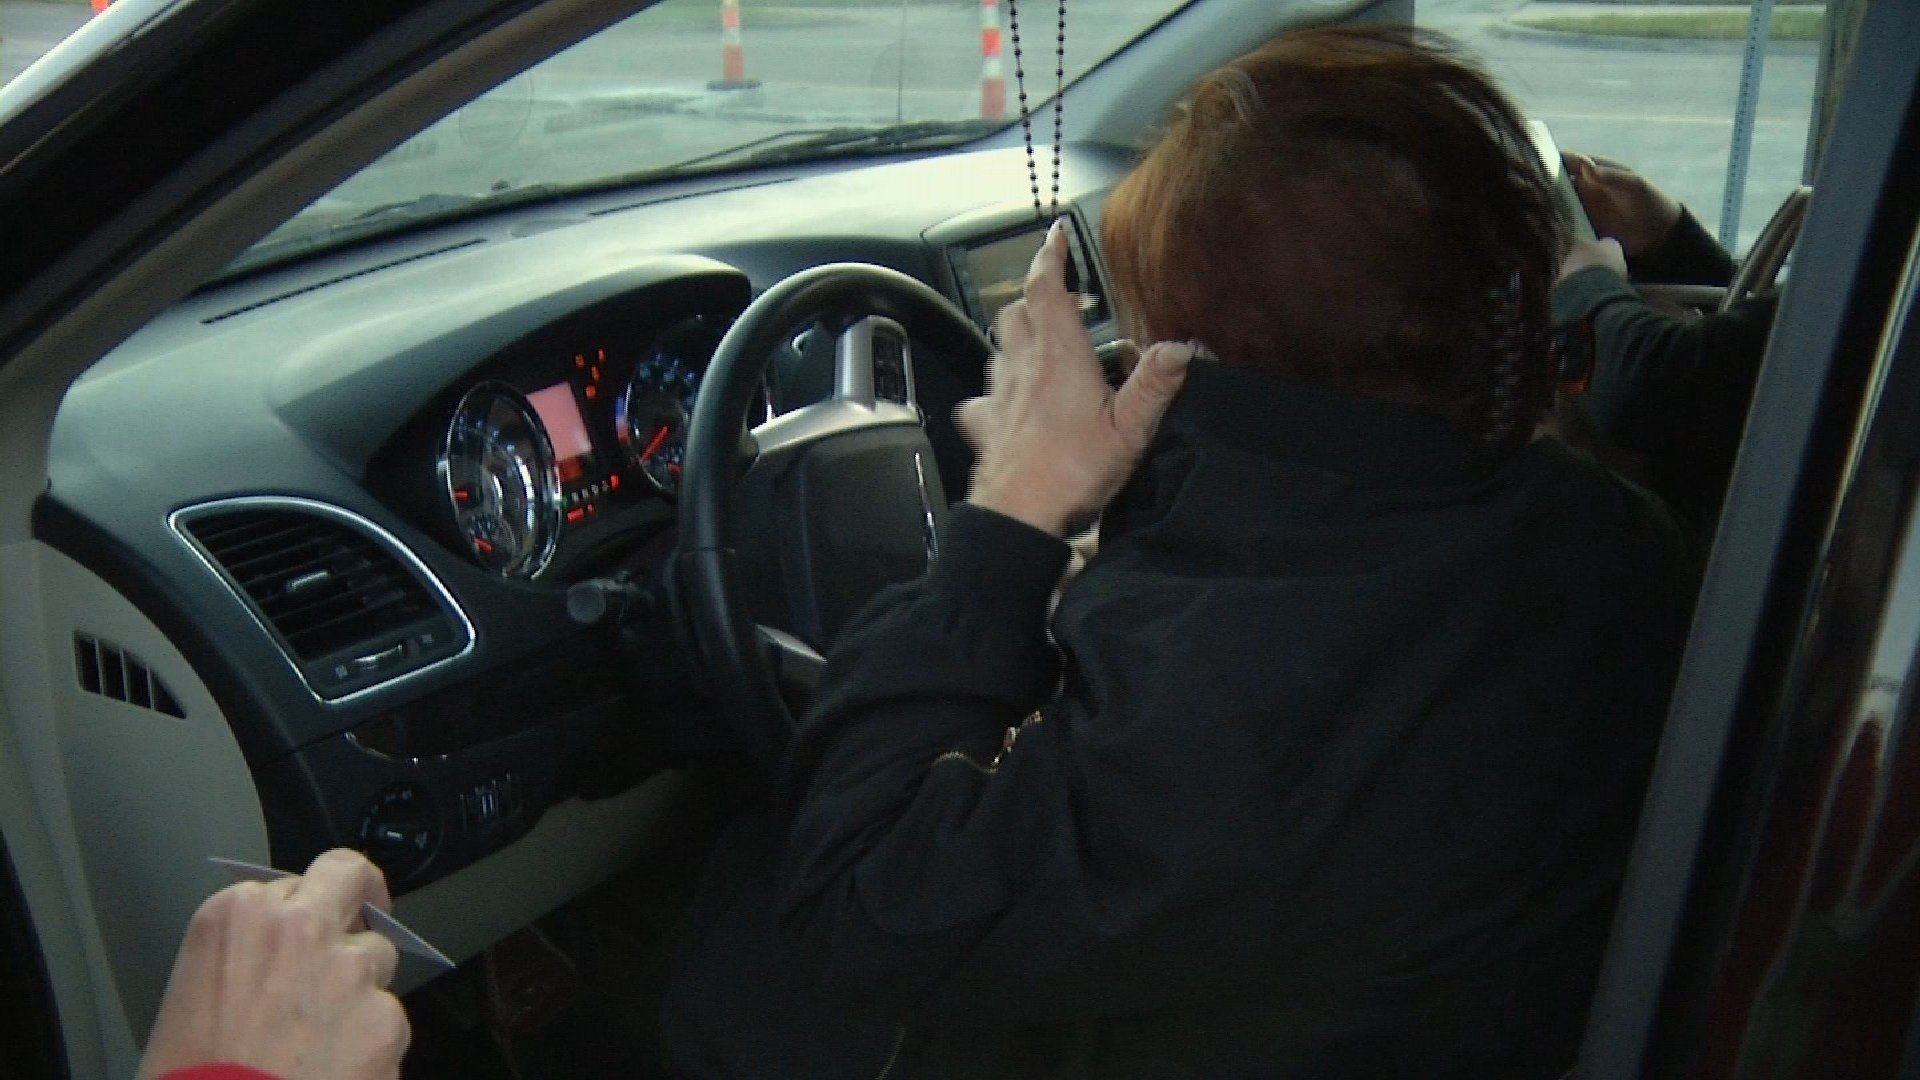 Nancy Marks threw a coat over her face and drove off when our investigative team tried to speak with her outside the shop where she works. We left a business card so she could contact us and offer her side the story. (KCTV5)